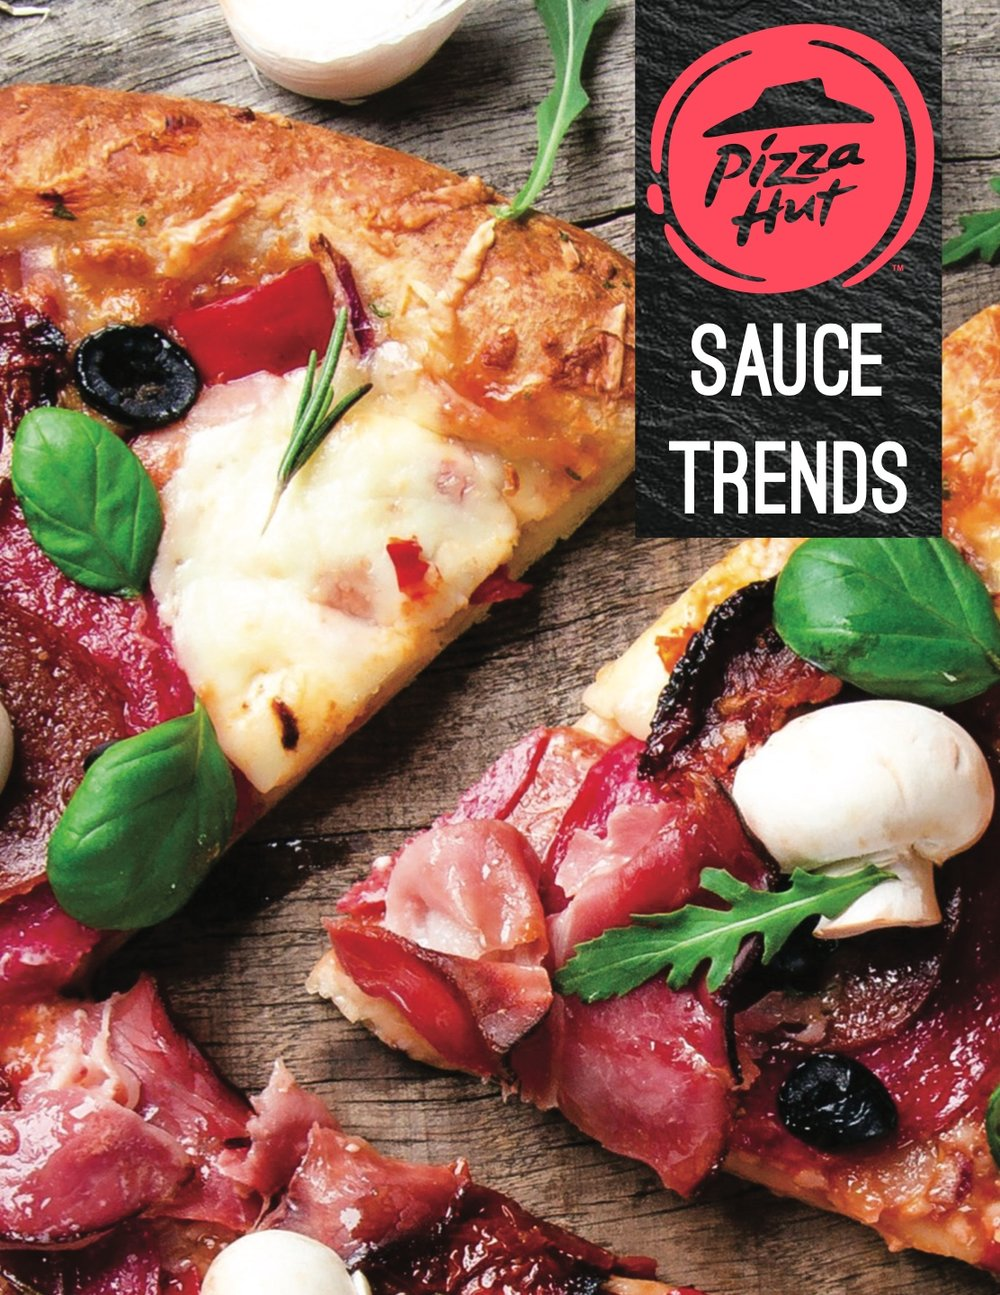 PIZZA HUT SAUCE TRENDS